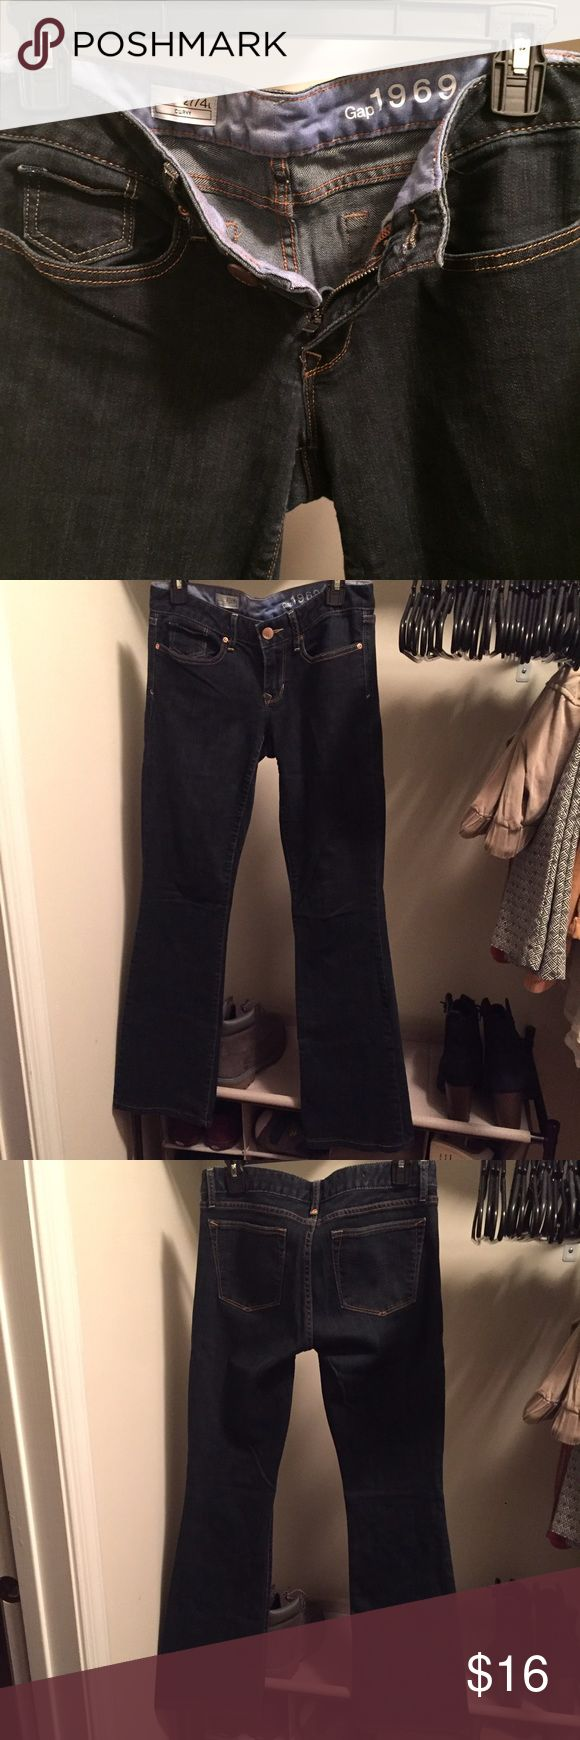 "Gap CURVY Jeans In really good condition, color is still rich. Inseam is about 30"", leg flare is about 9"". This is size 4L. See photos for details. GAP Jeans Flare & Wide Leg"